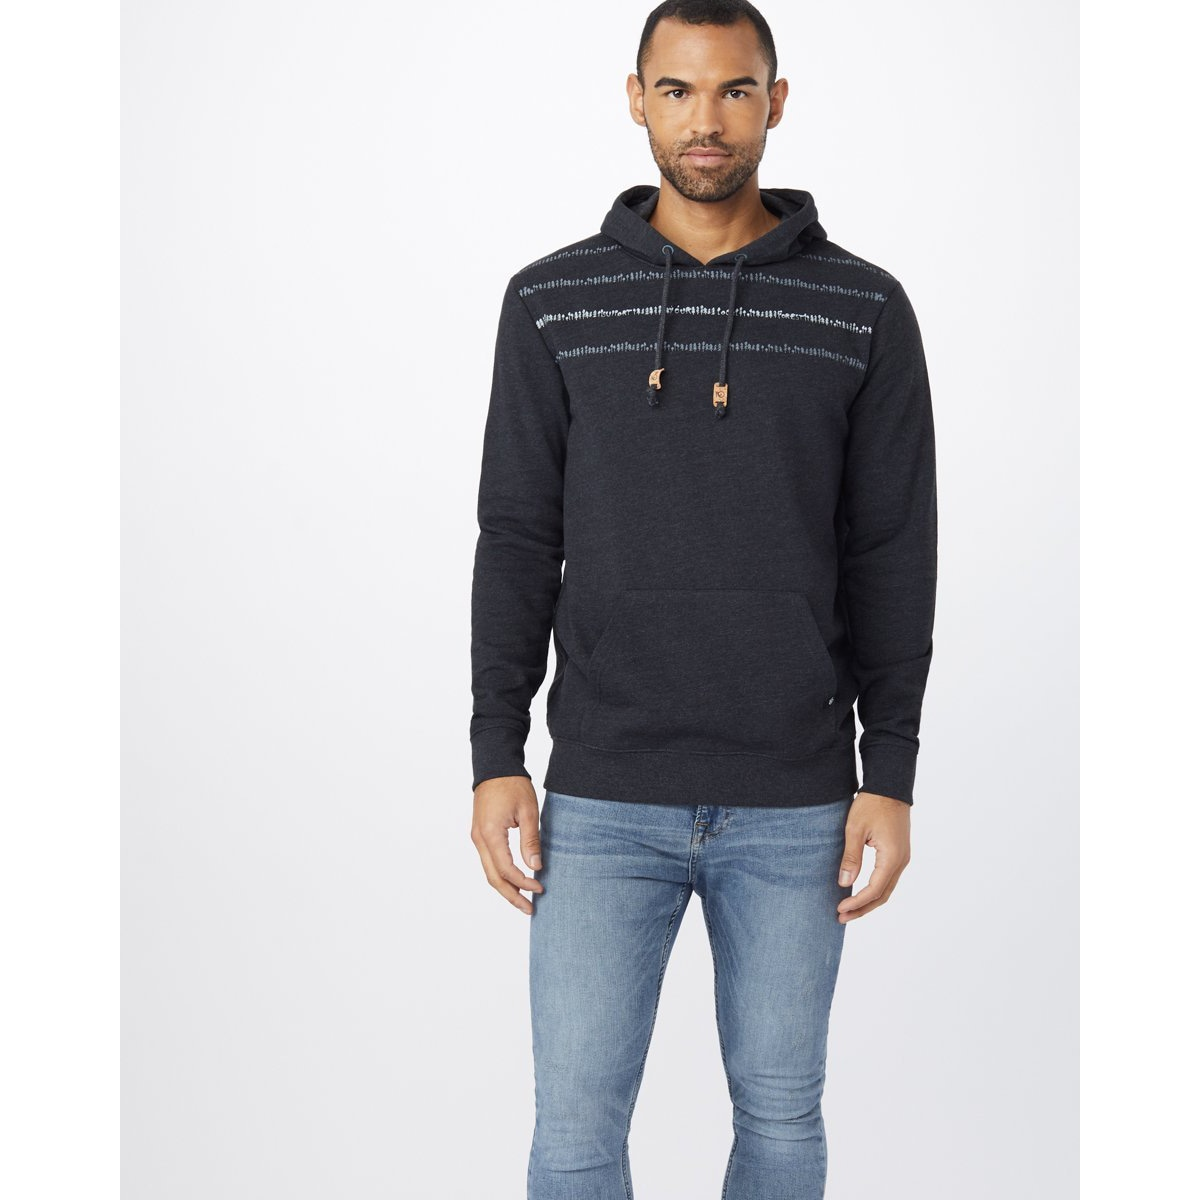 Support Stripe Hoodie - Men's